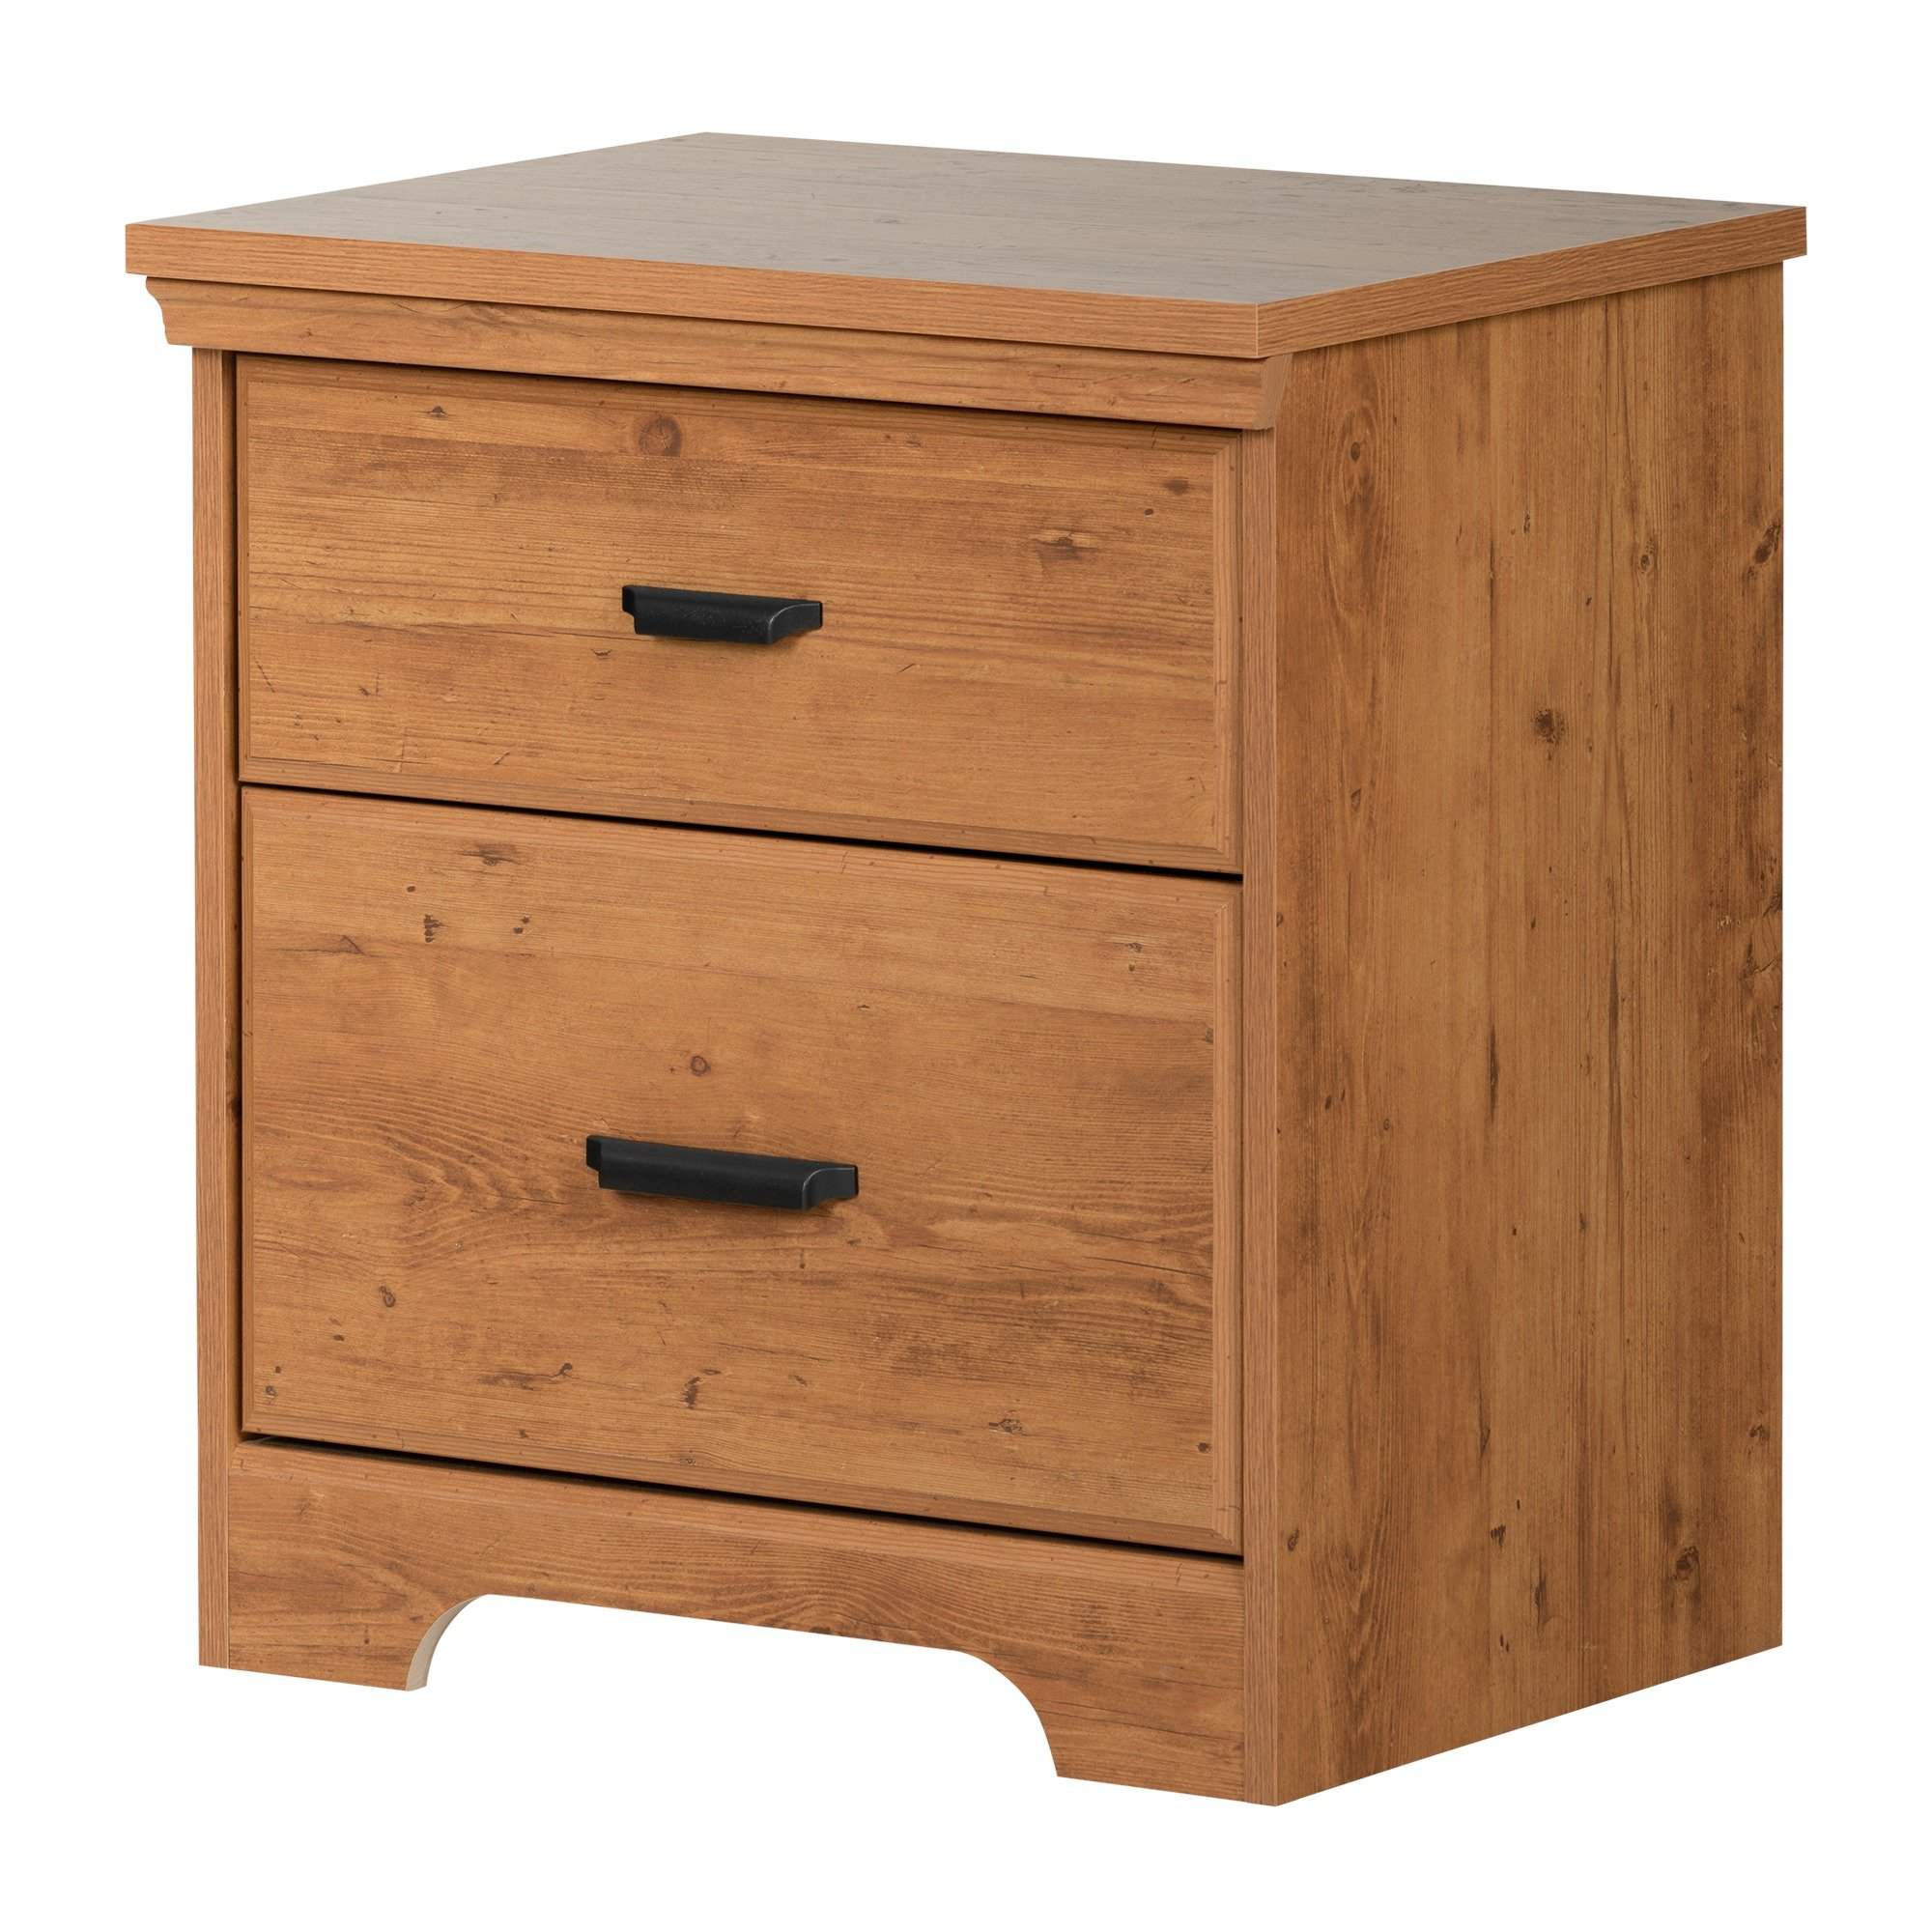 South Shore Versa 2-Drawer Nightstand, Country Pine with Antique Handles by South Shore (Image #1)